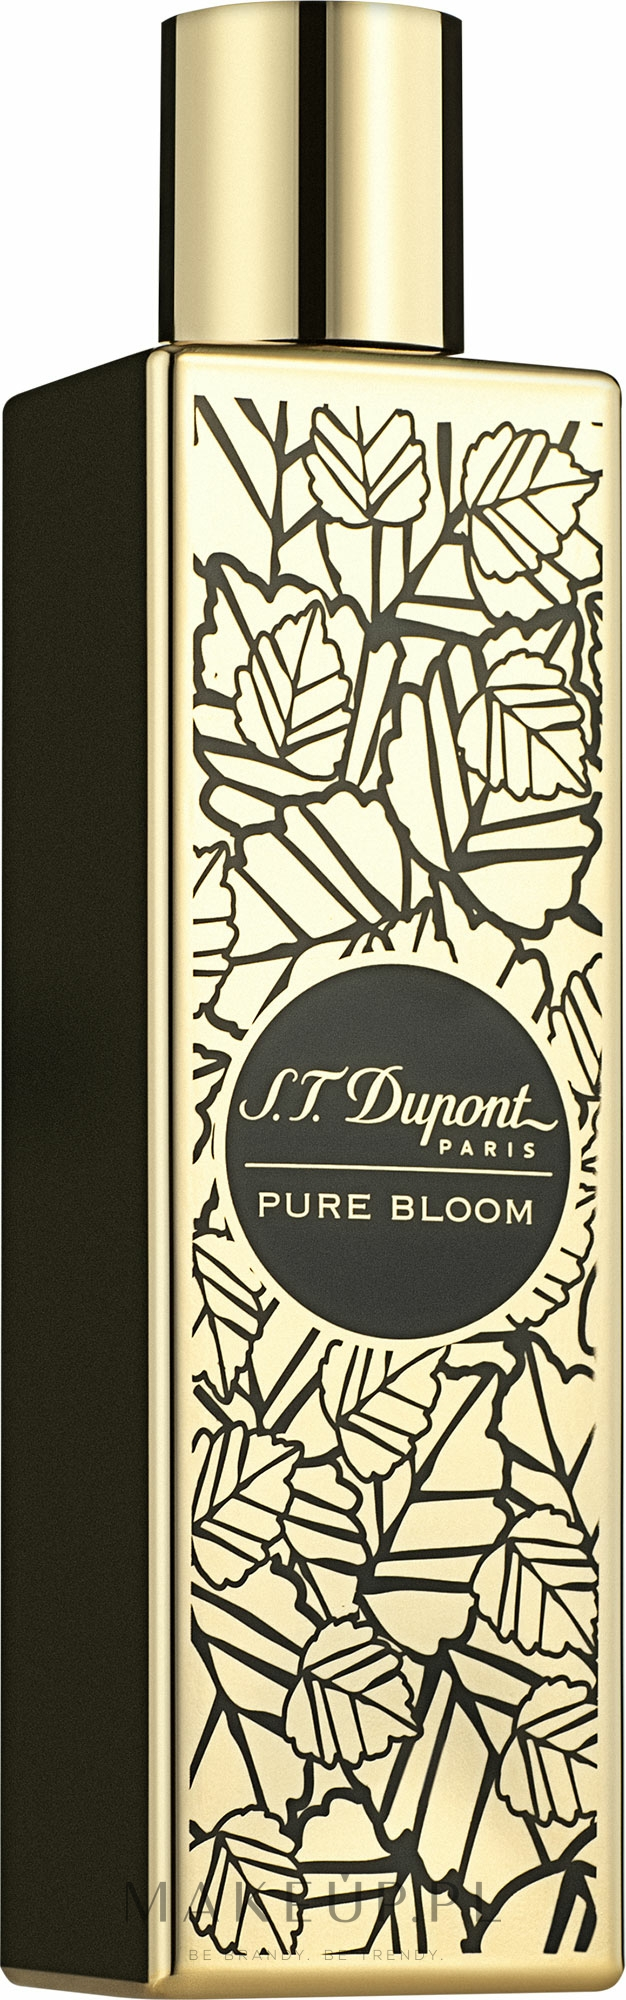 s.t. dupont pure bloom